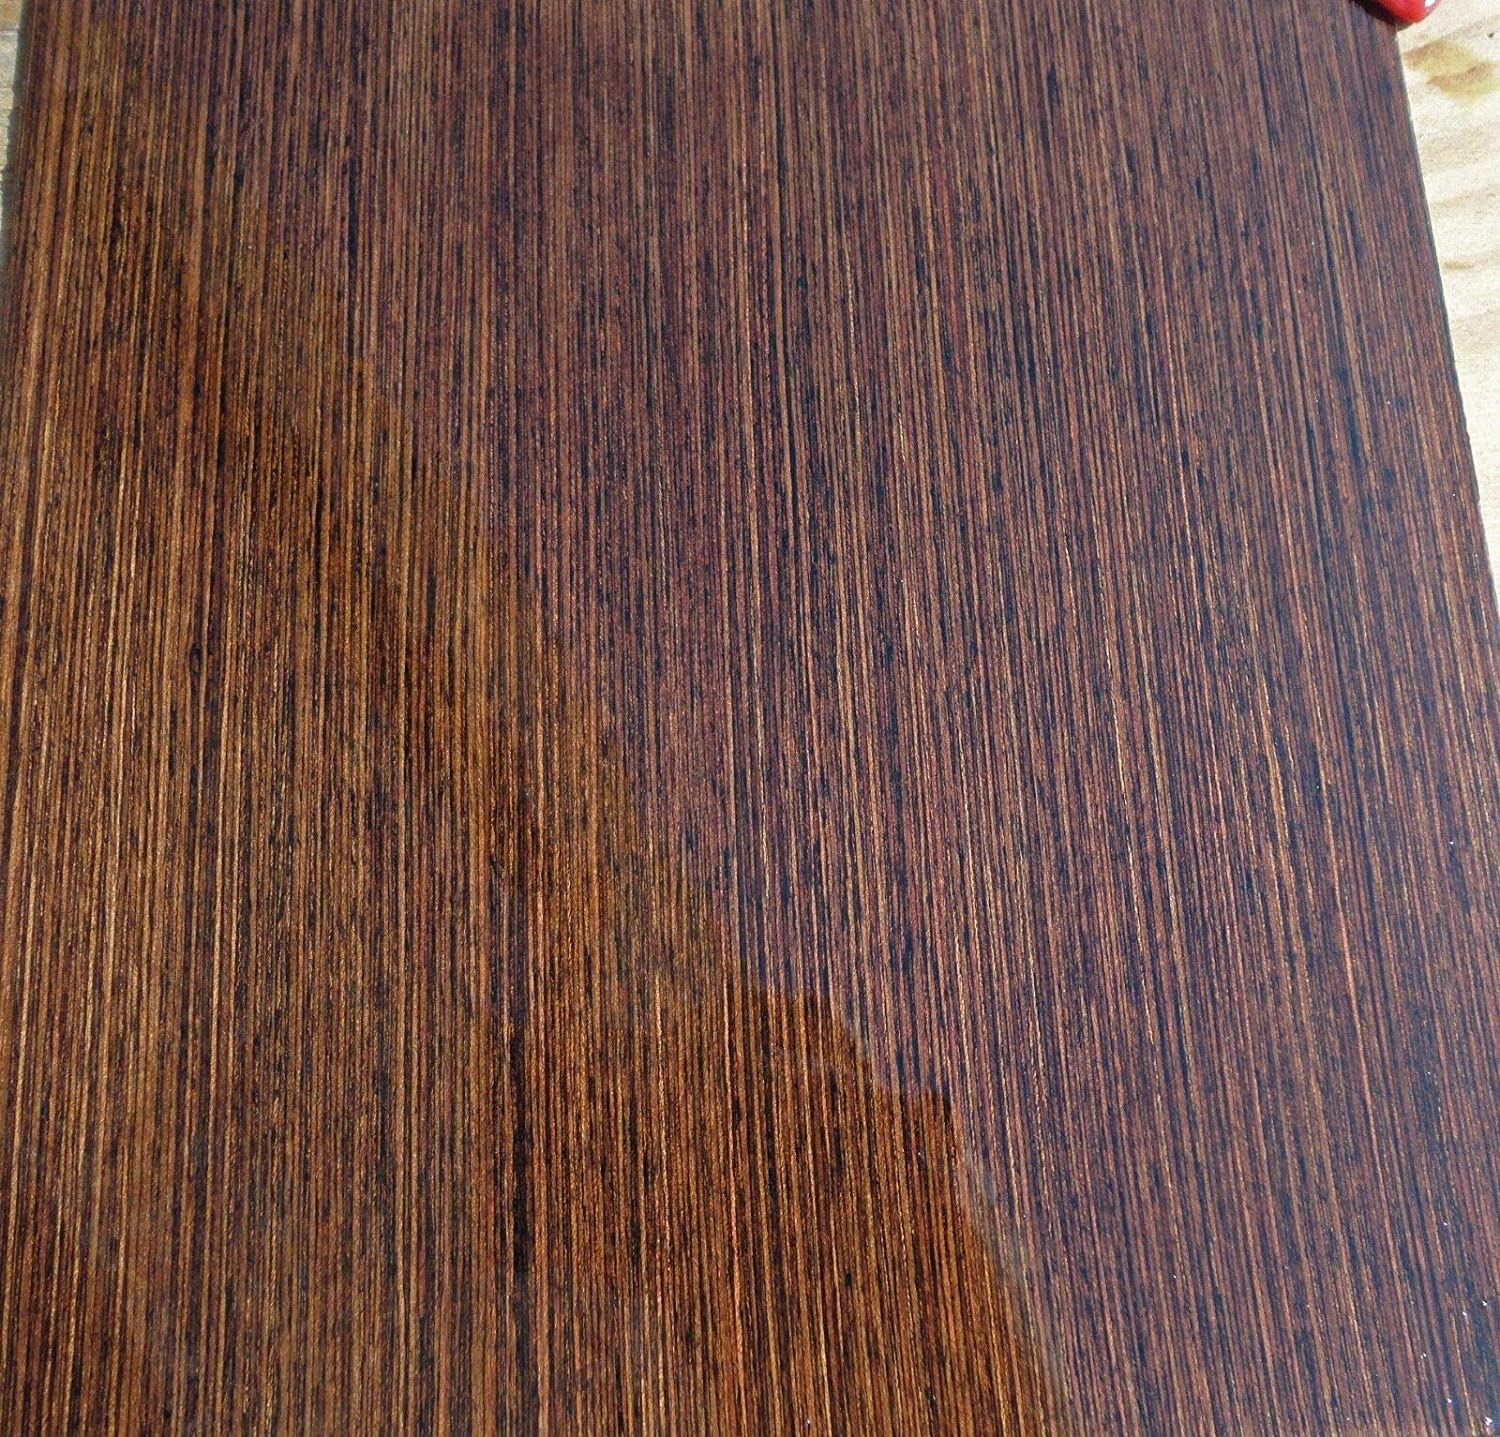 """Birdseye Maple composite wood veneer 24/"""" x 96/"""" with paper backer 1//40th/"""" thick"""